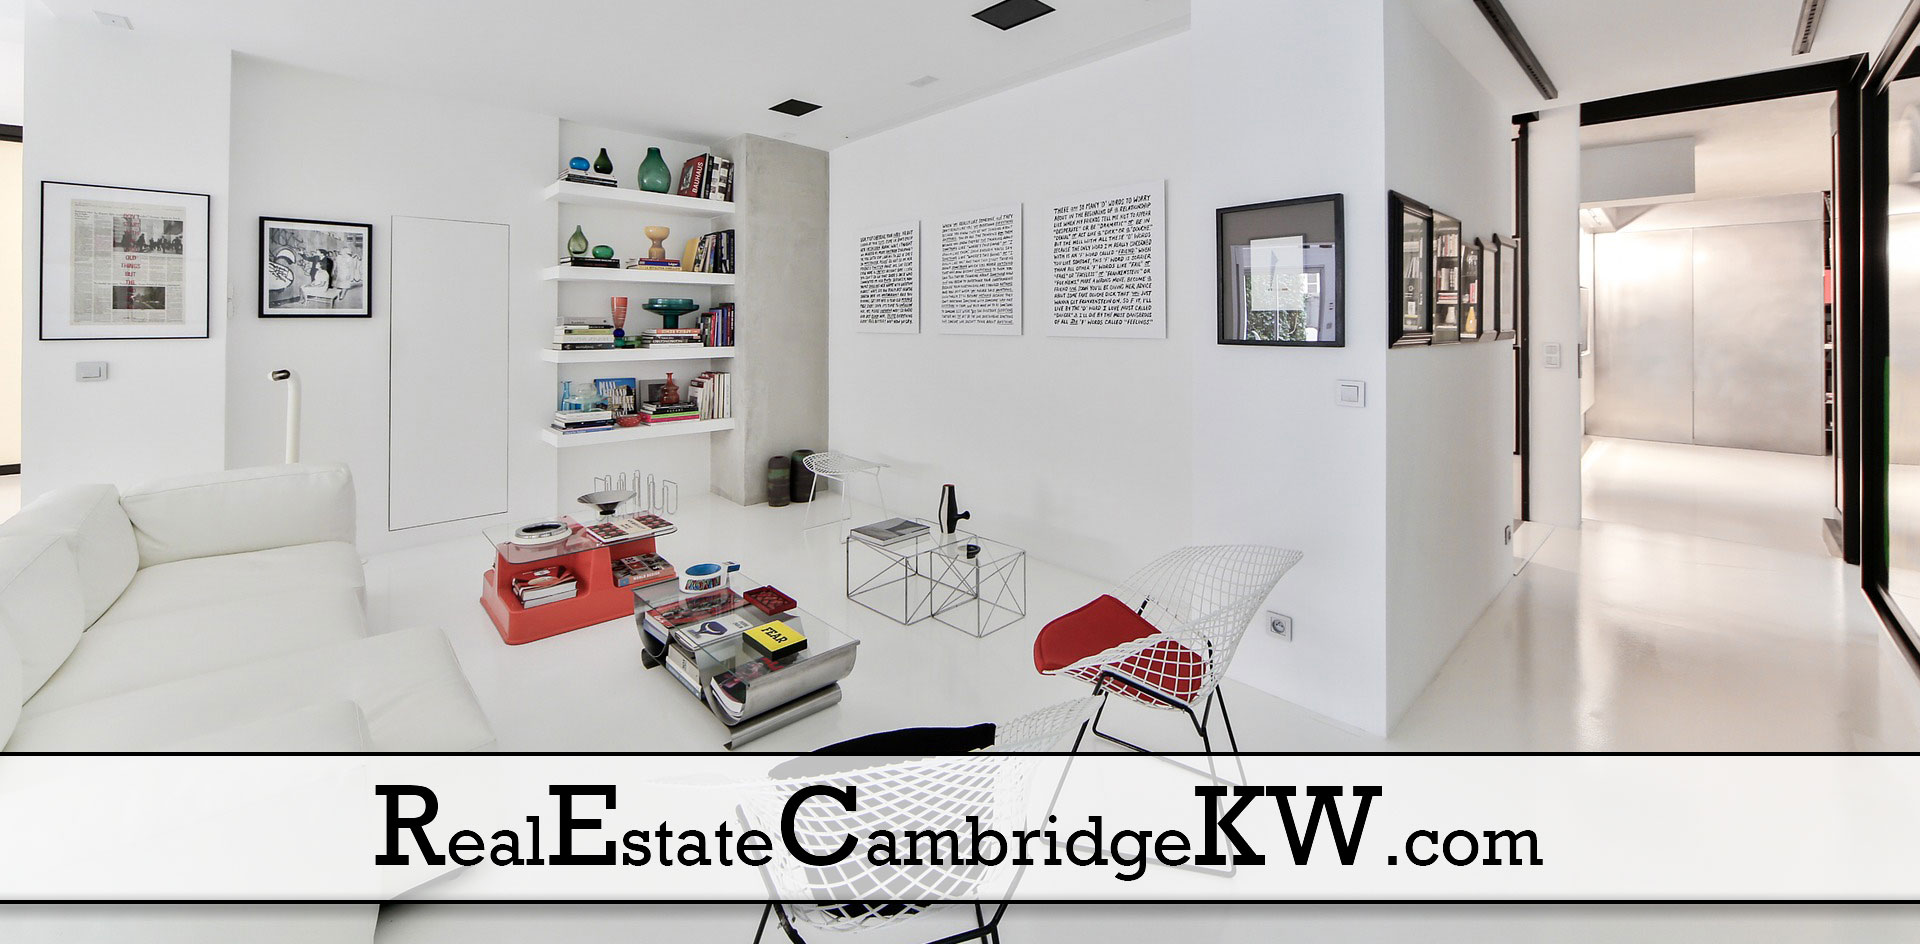 Real Estate Cambridge Banner 1